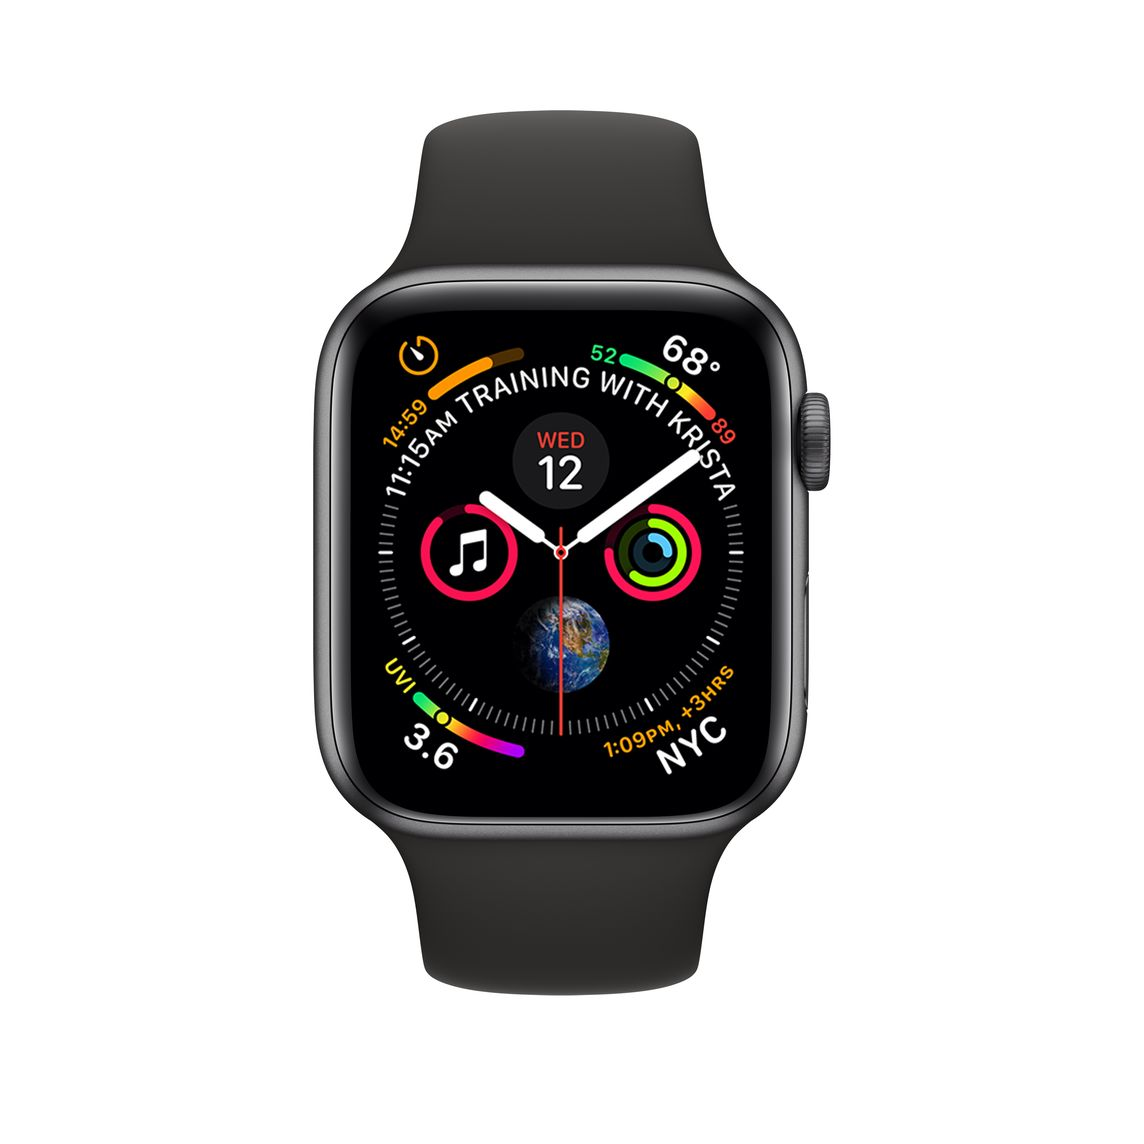 Refurbished Apple Watch Series 4 Gps 44mm Space Gray Aluminum Case With Black Sport Band Apple